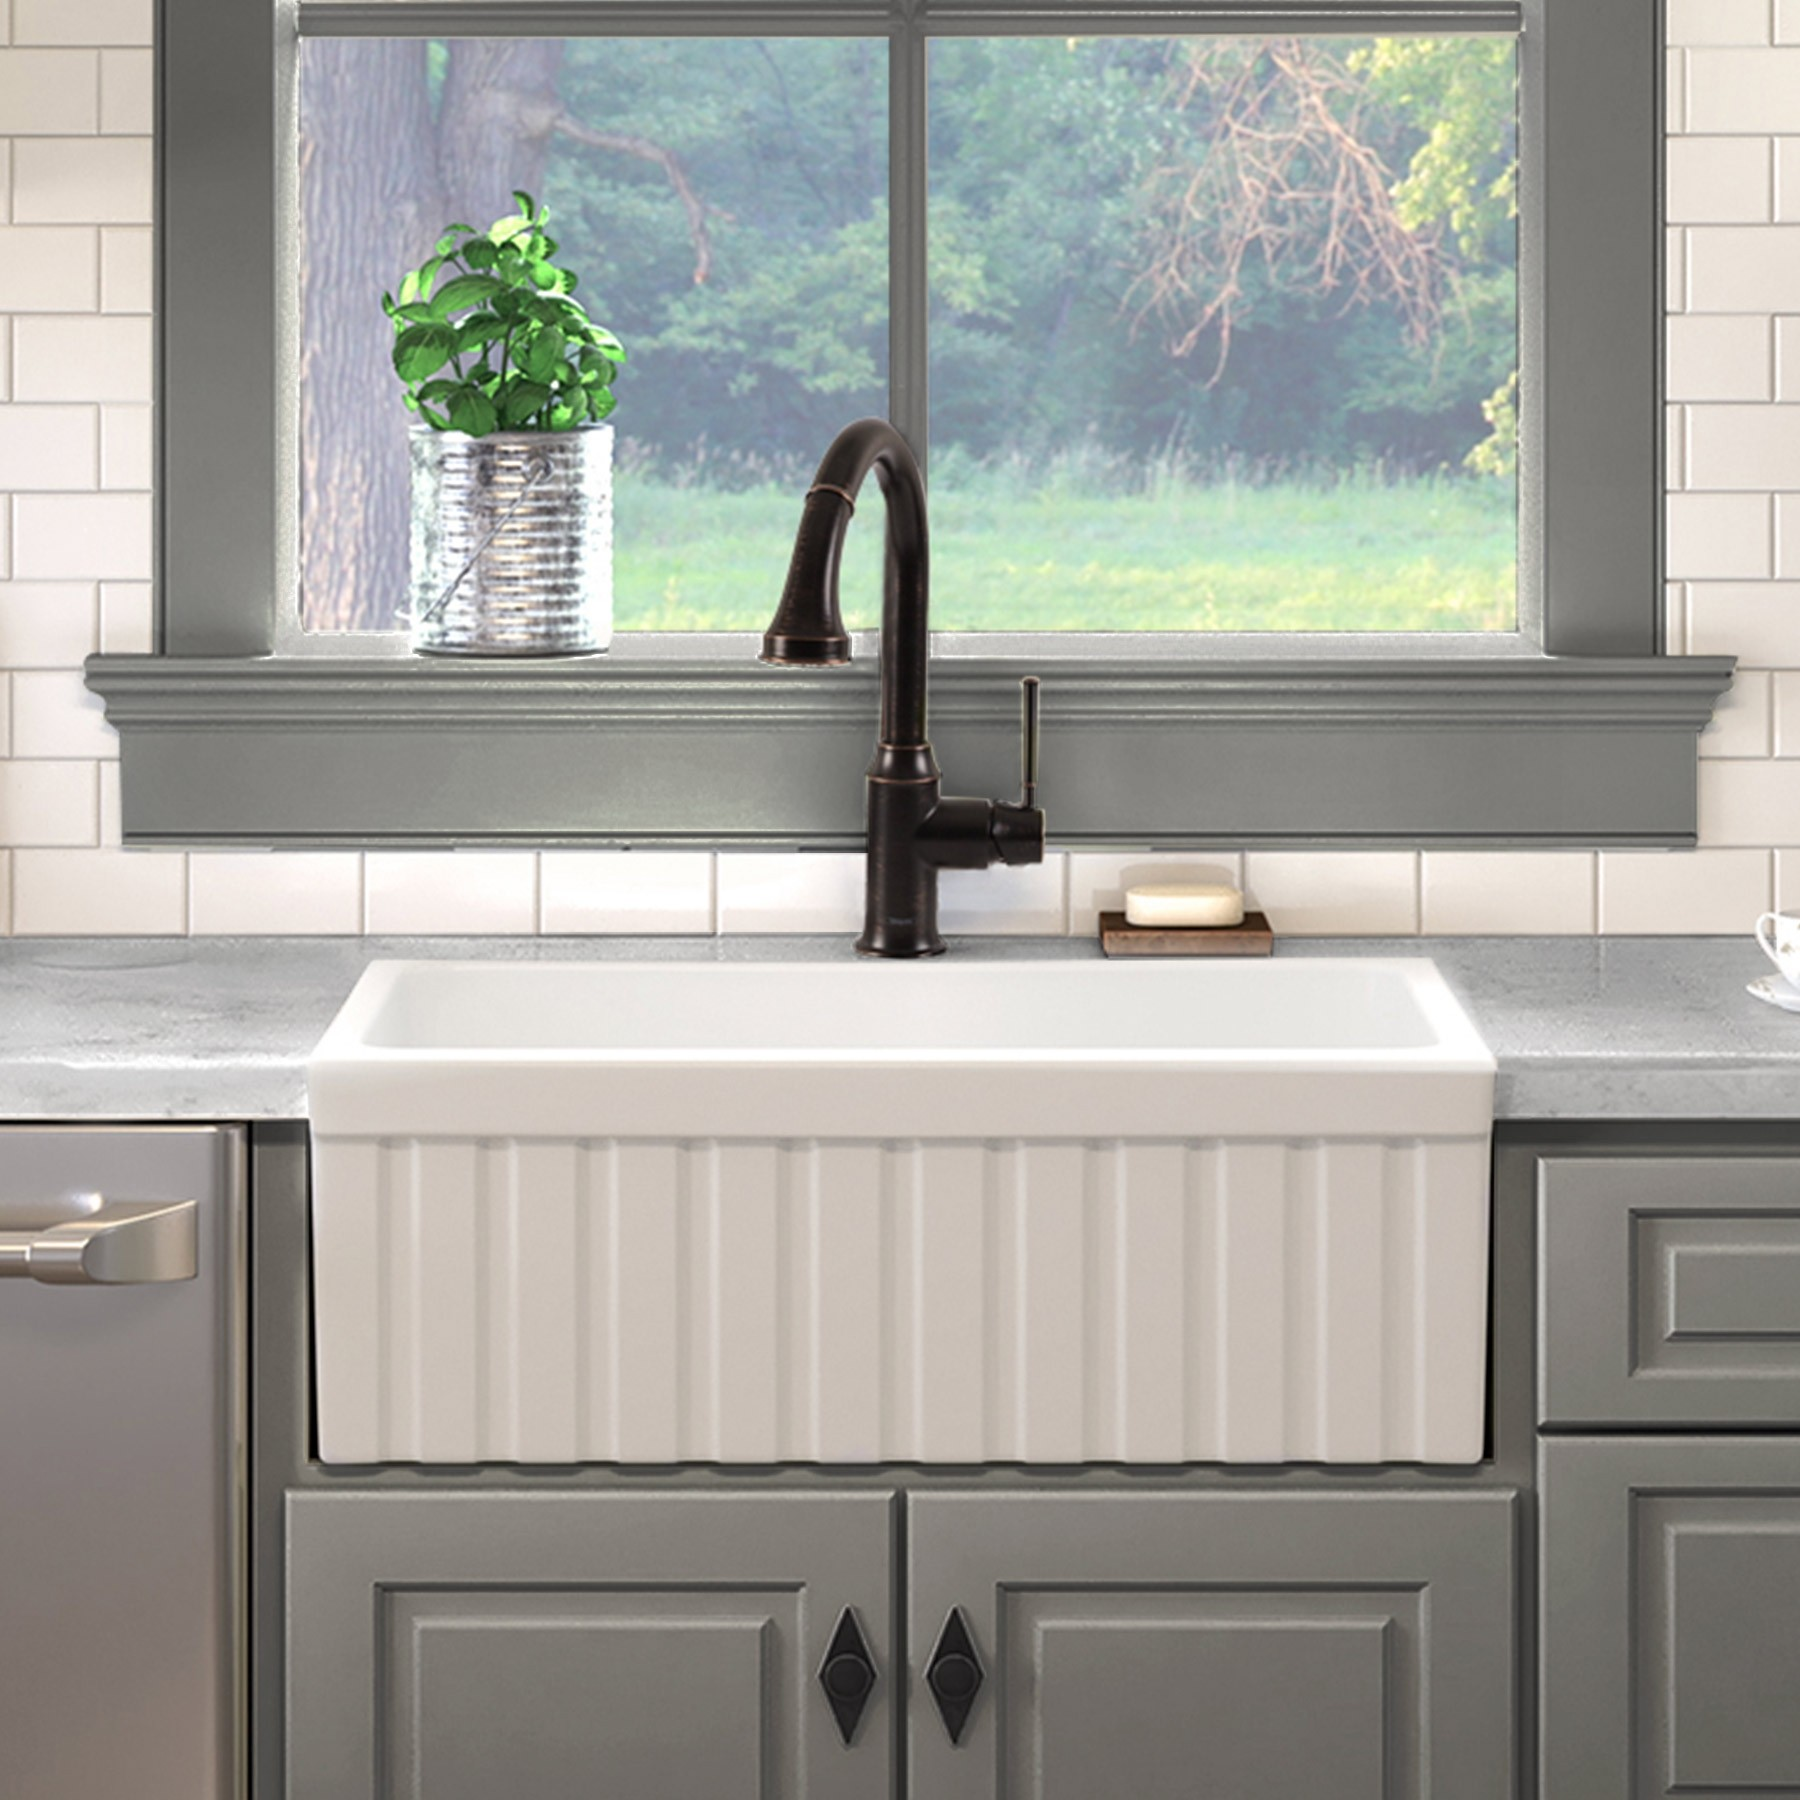 Victoria 30 Inch Fireclay Farmhouse Kitchen Sink With